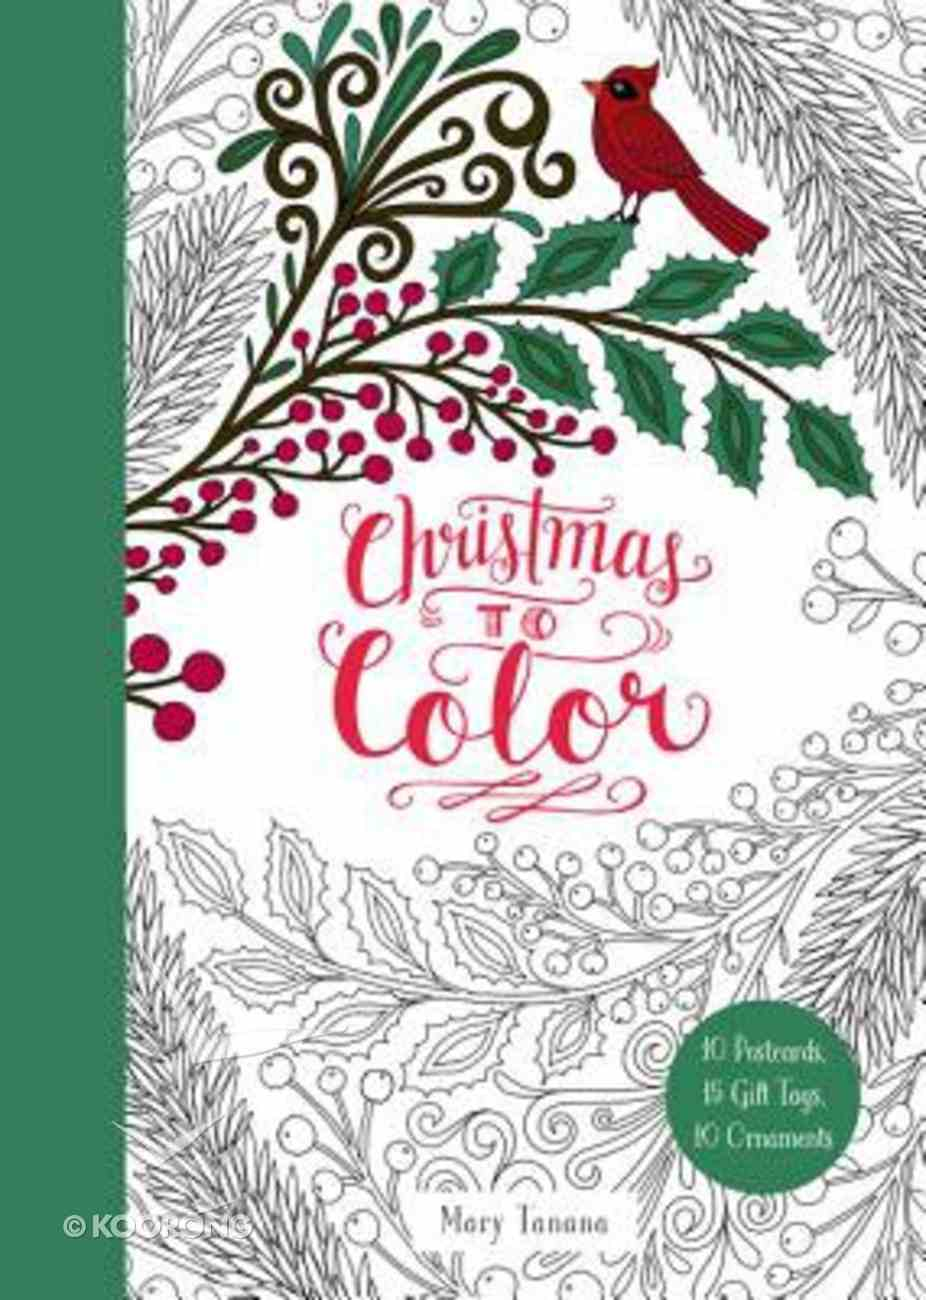 Christmas to Color: 10 Postcards, 15 Gift Tags, 10 Ornaments Paperback